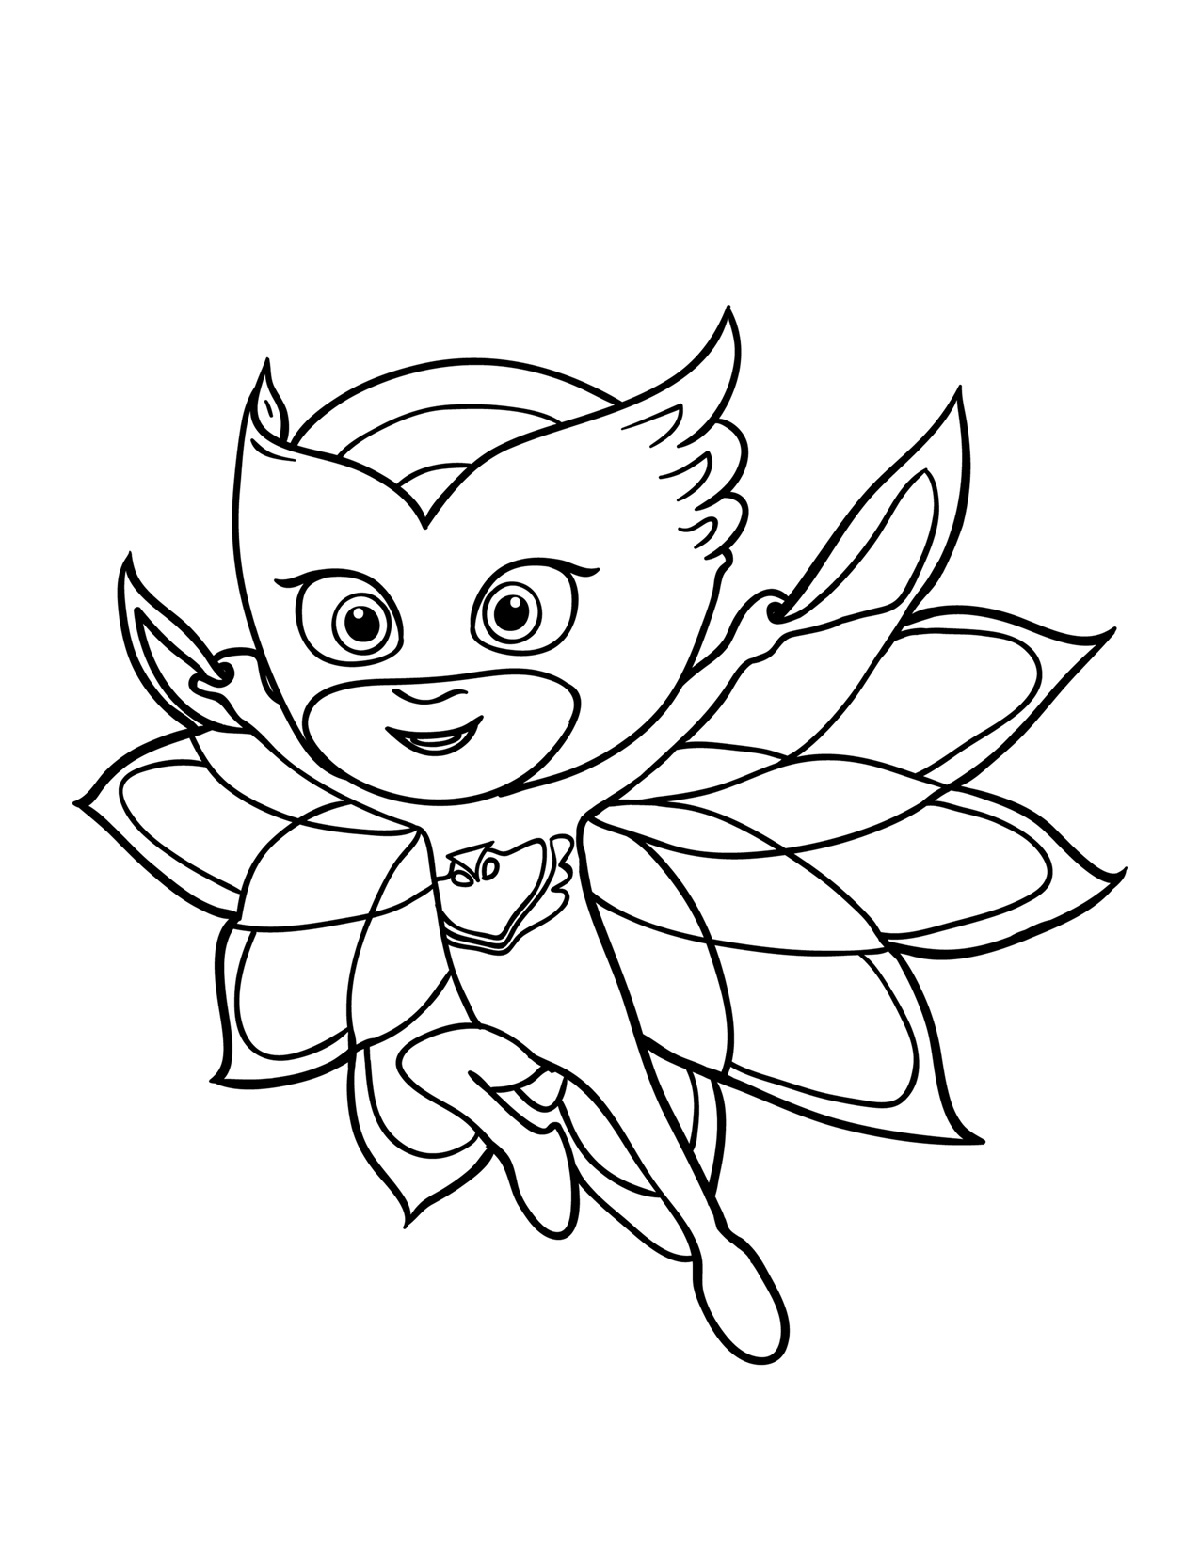 Pj Masks Coloring Pages Free